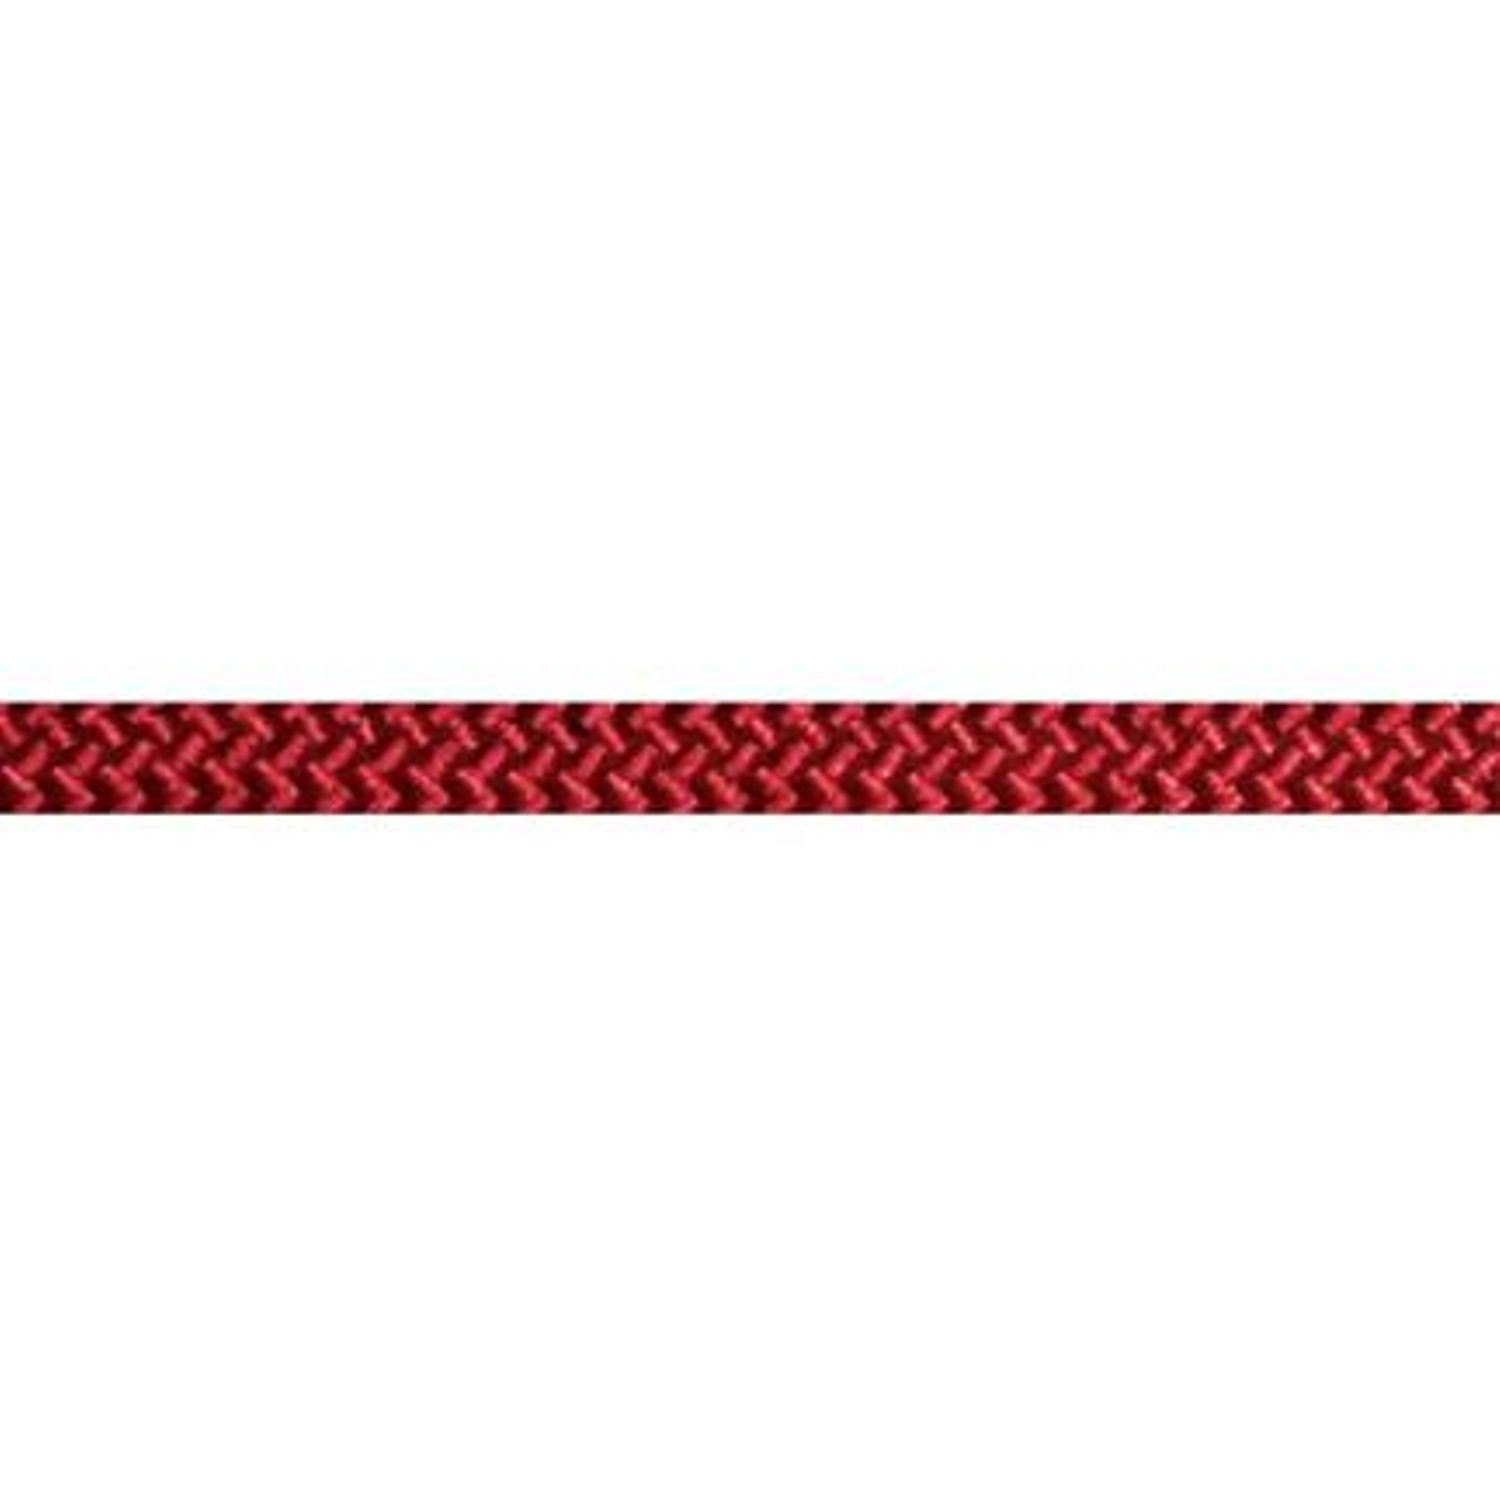 12.5 MM RED STATIC KERNMANTLE ROPE, PER METER